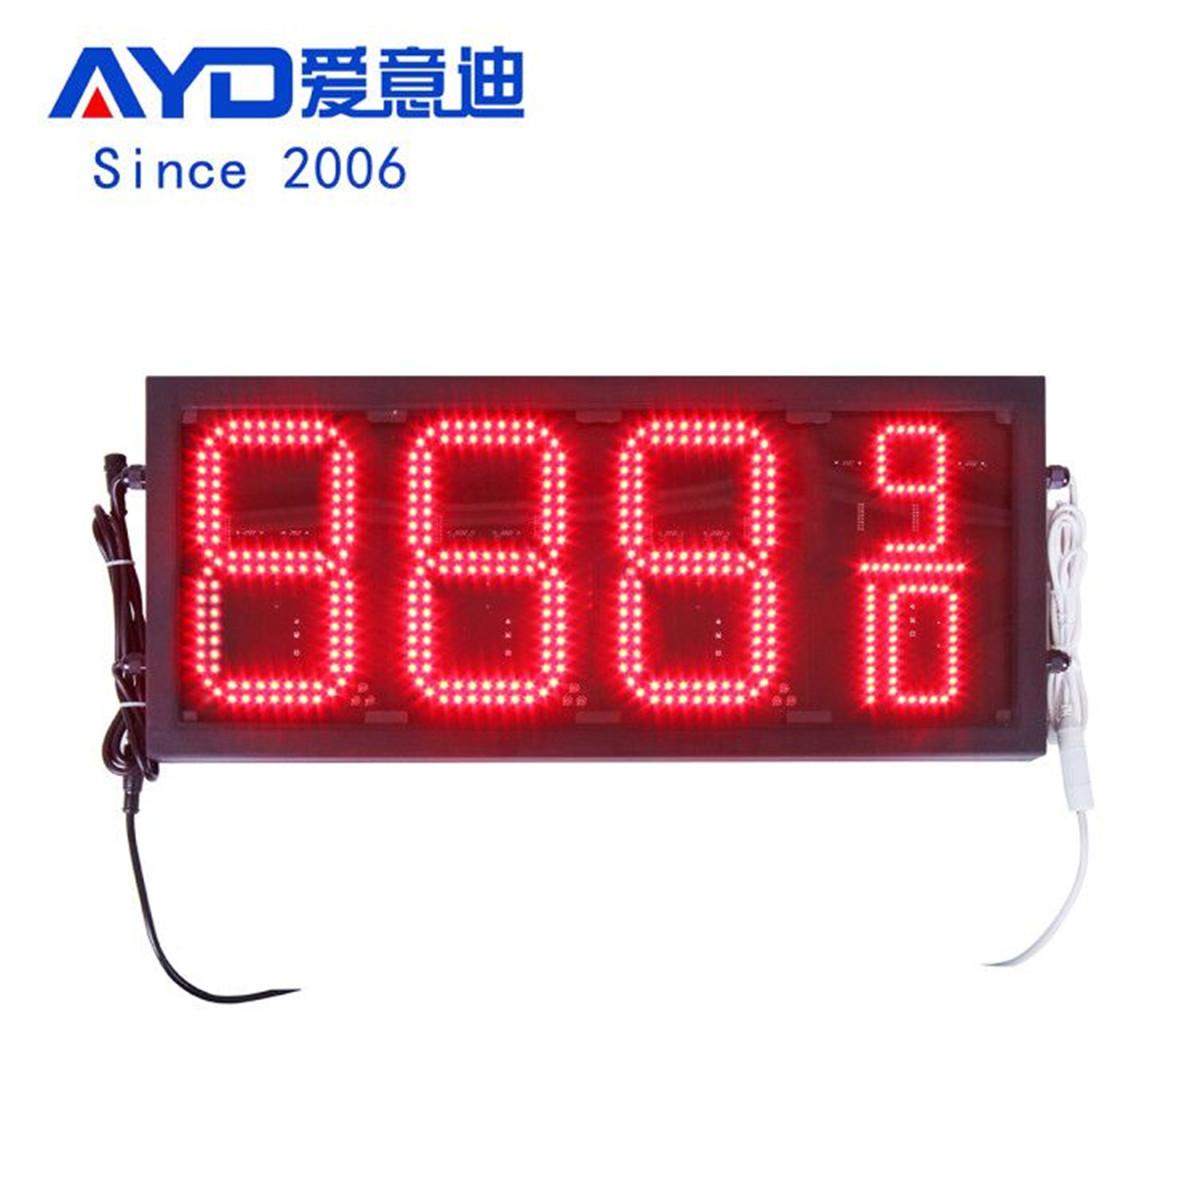 American PWM LED gas price displays